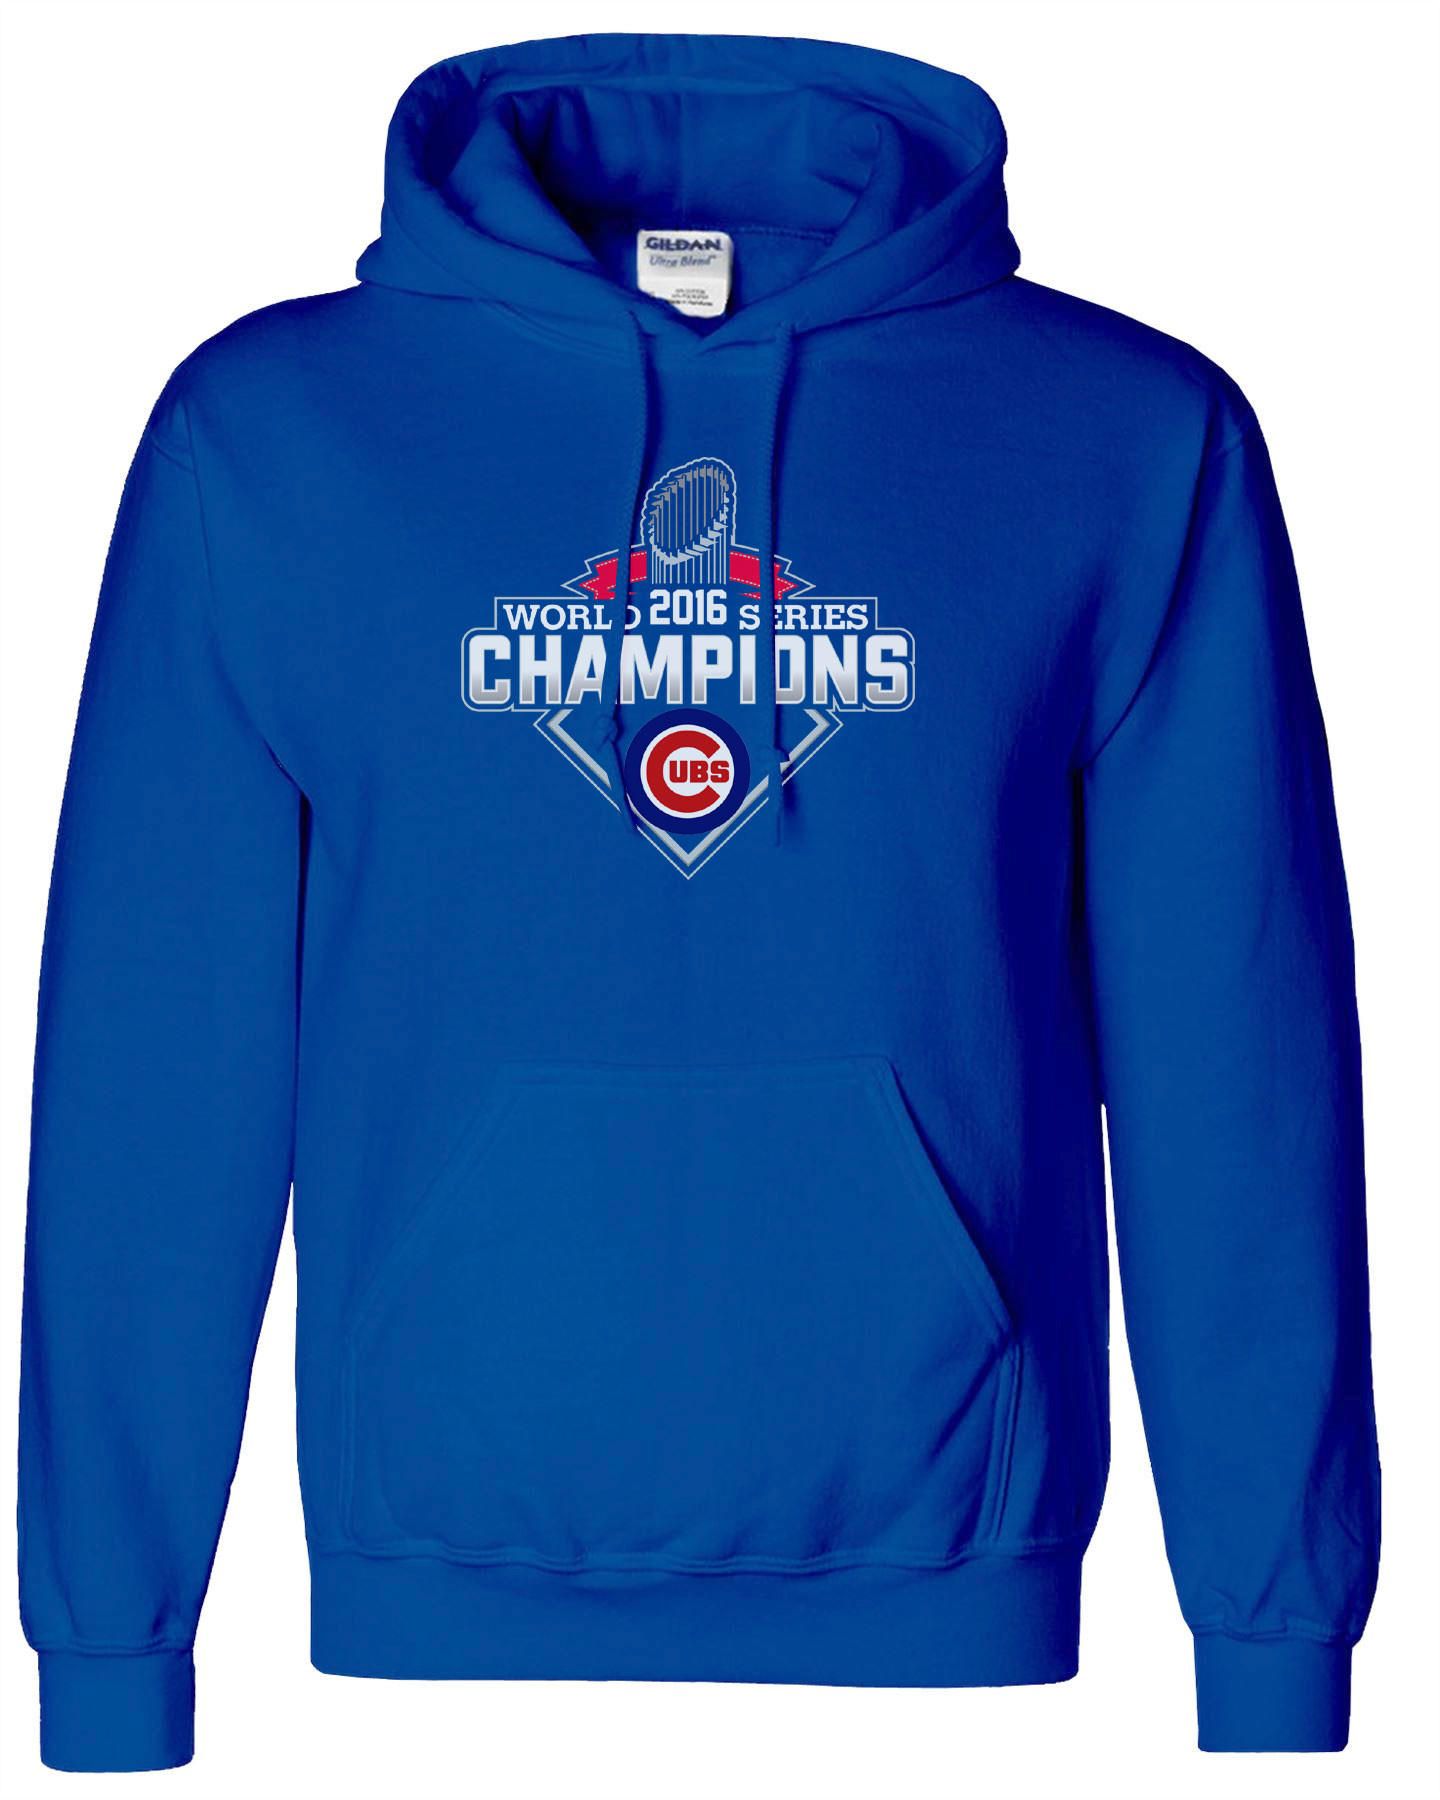 premium selection 8cb8d 4a59a Chicago Cubs 2016 World Series Champions Hoodie Hooded Sweatshirt